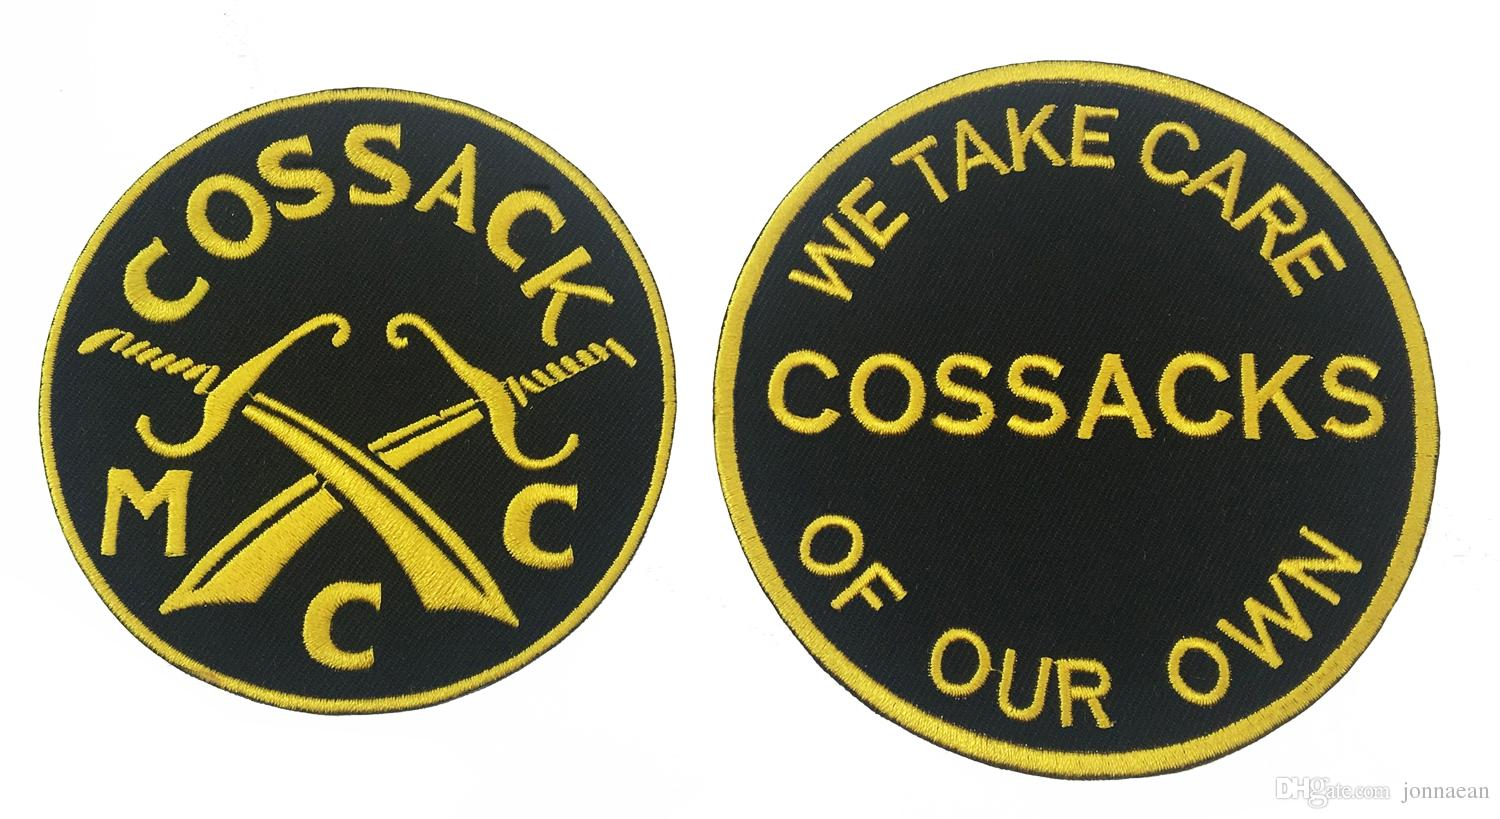 Nueva llegada COSSACKS TEXAS MC bordado de hierro cosido en Biker Rider Patch Full Back Size Chaqueta chaleco insignia SGT. EN ARMAS Rocker Patch